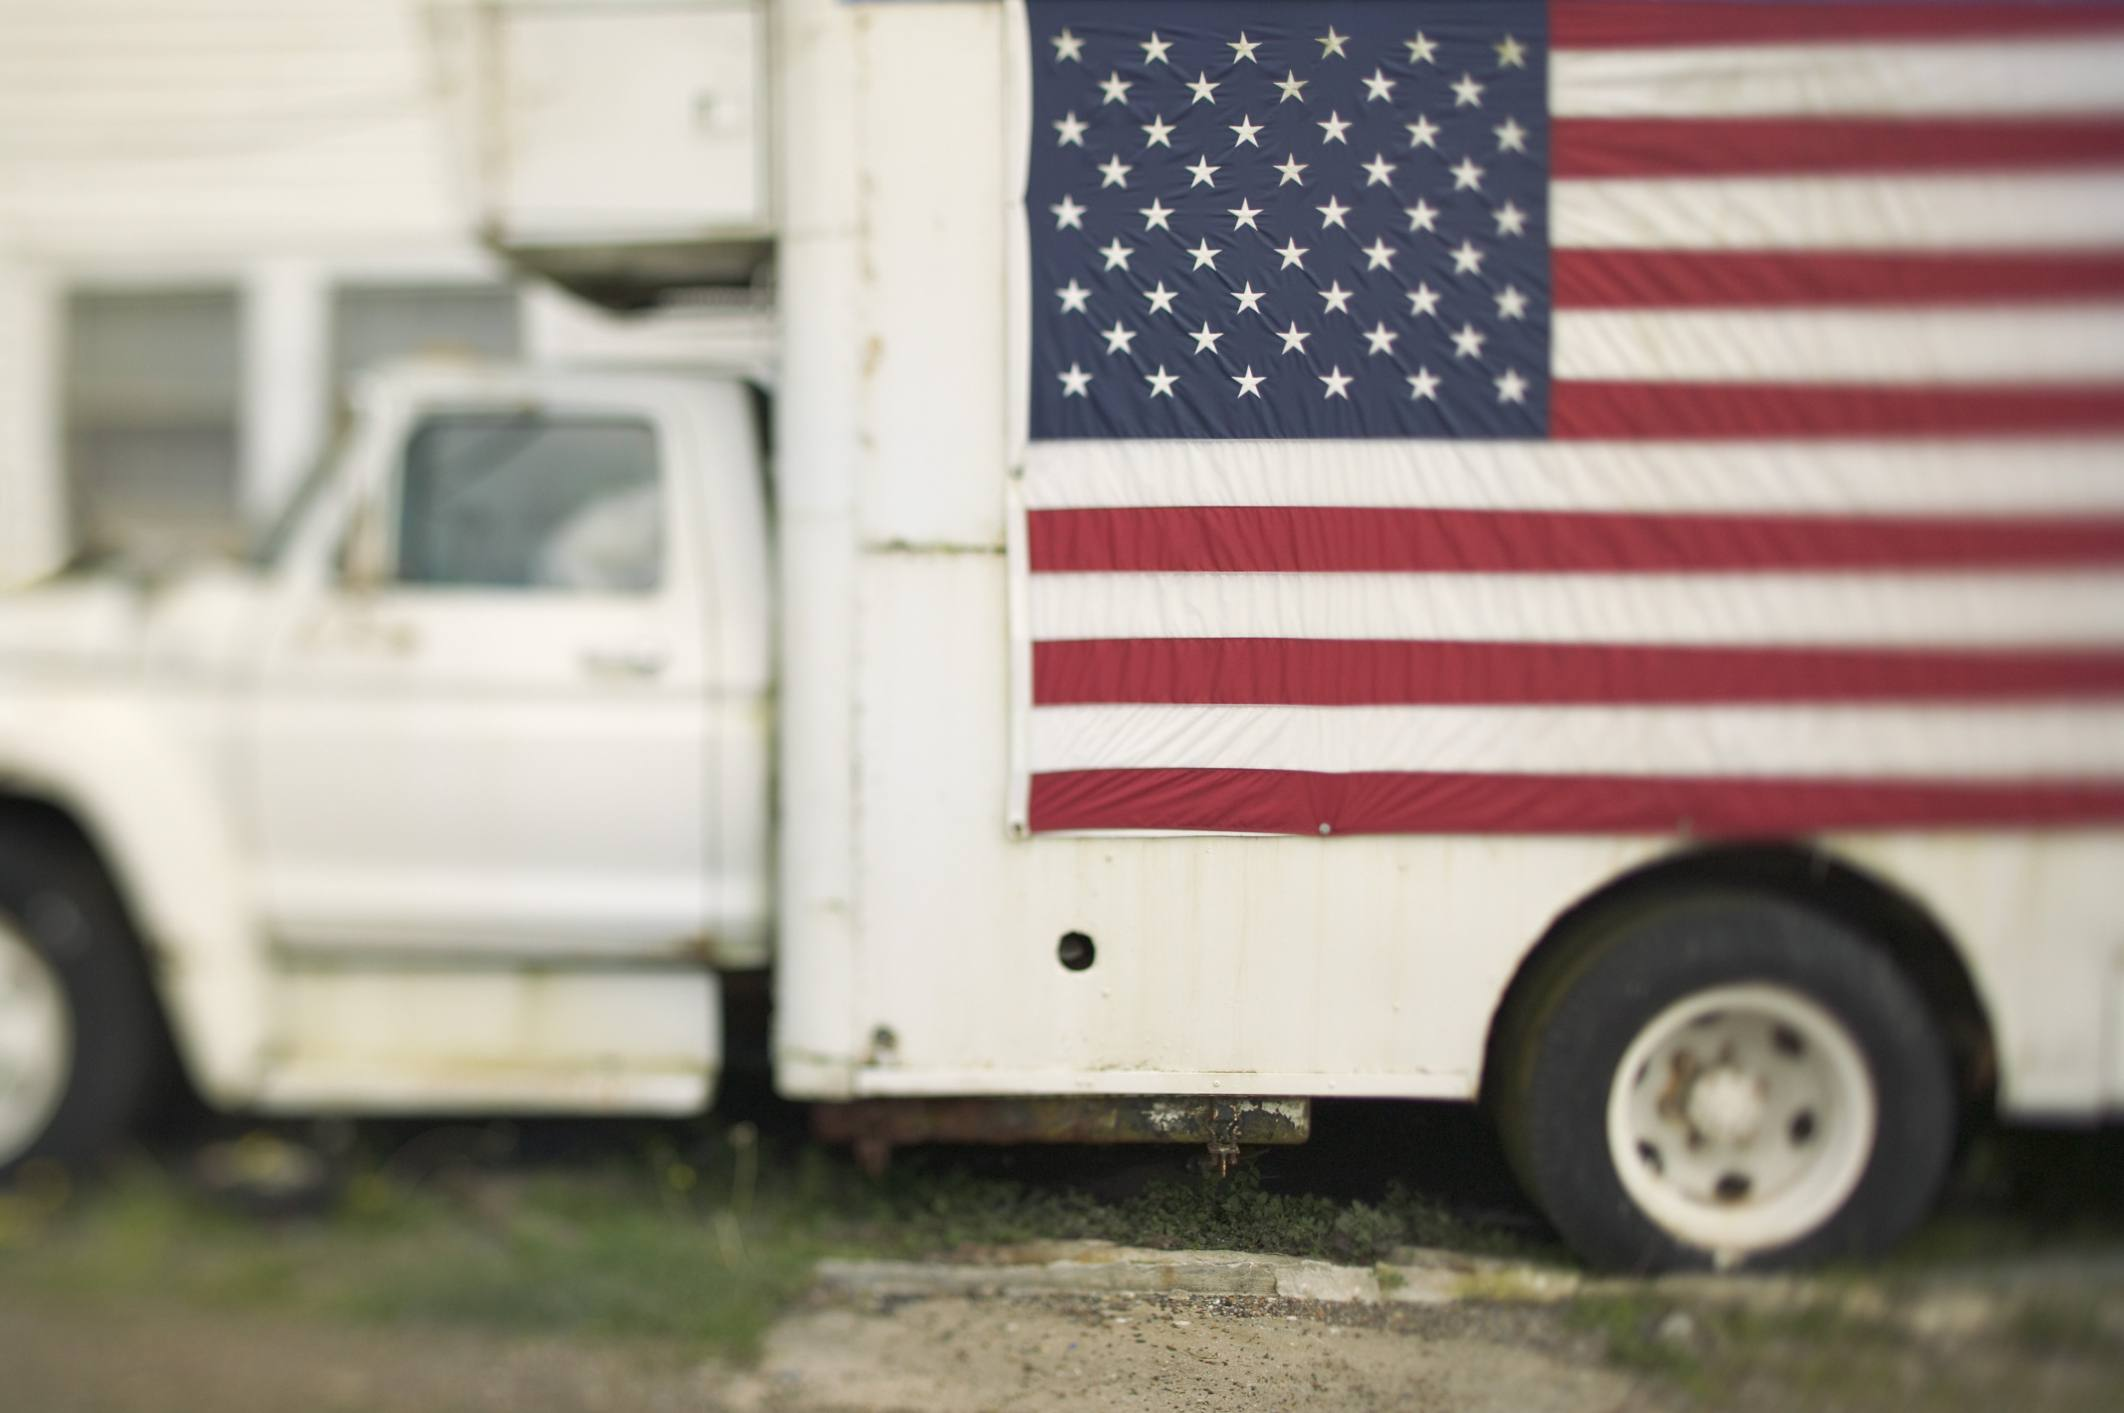 Delivery truck with US flag on it